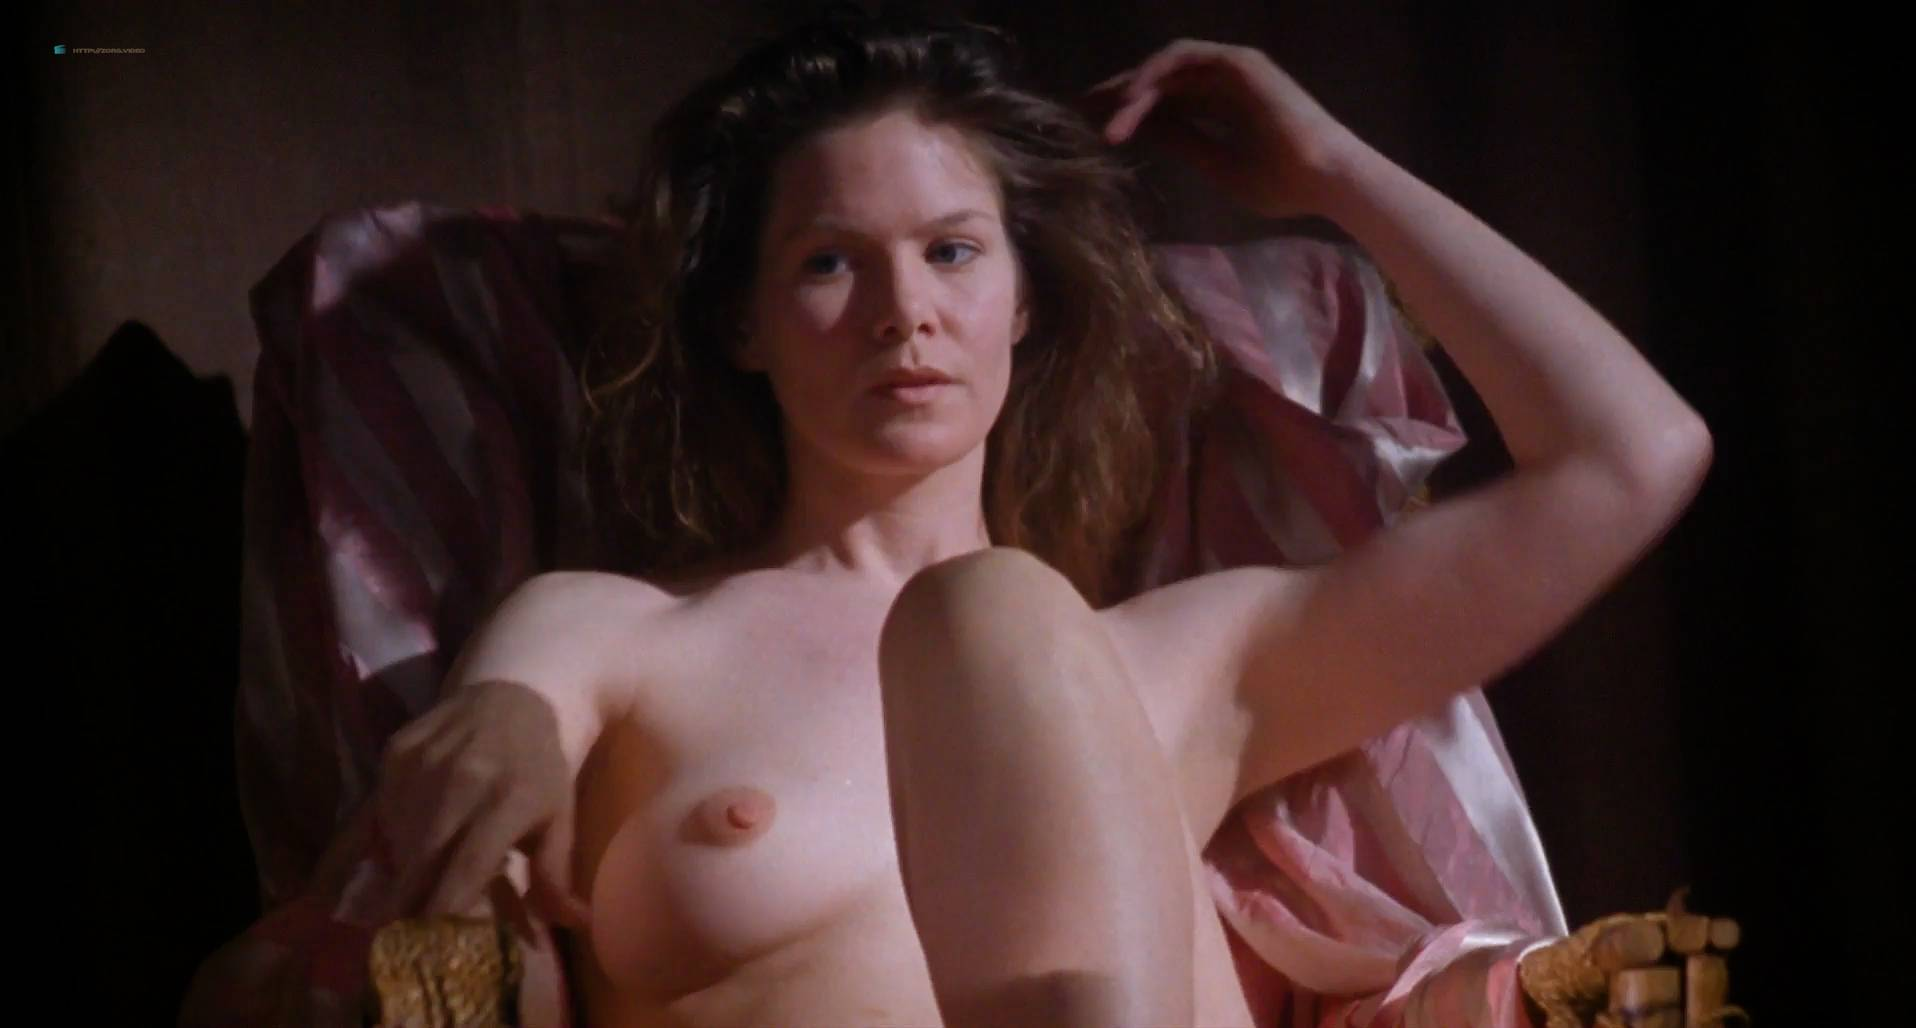 hot nude sex scenes in hollywood movies